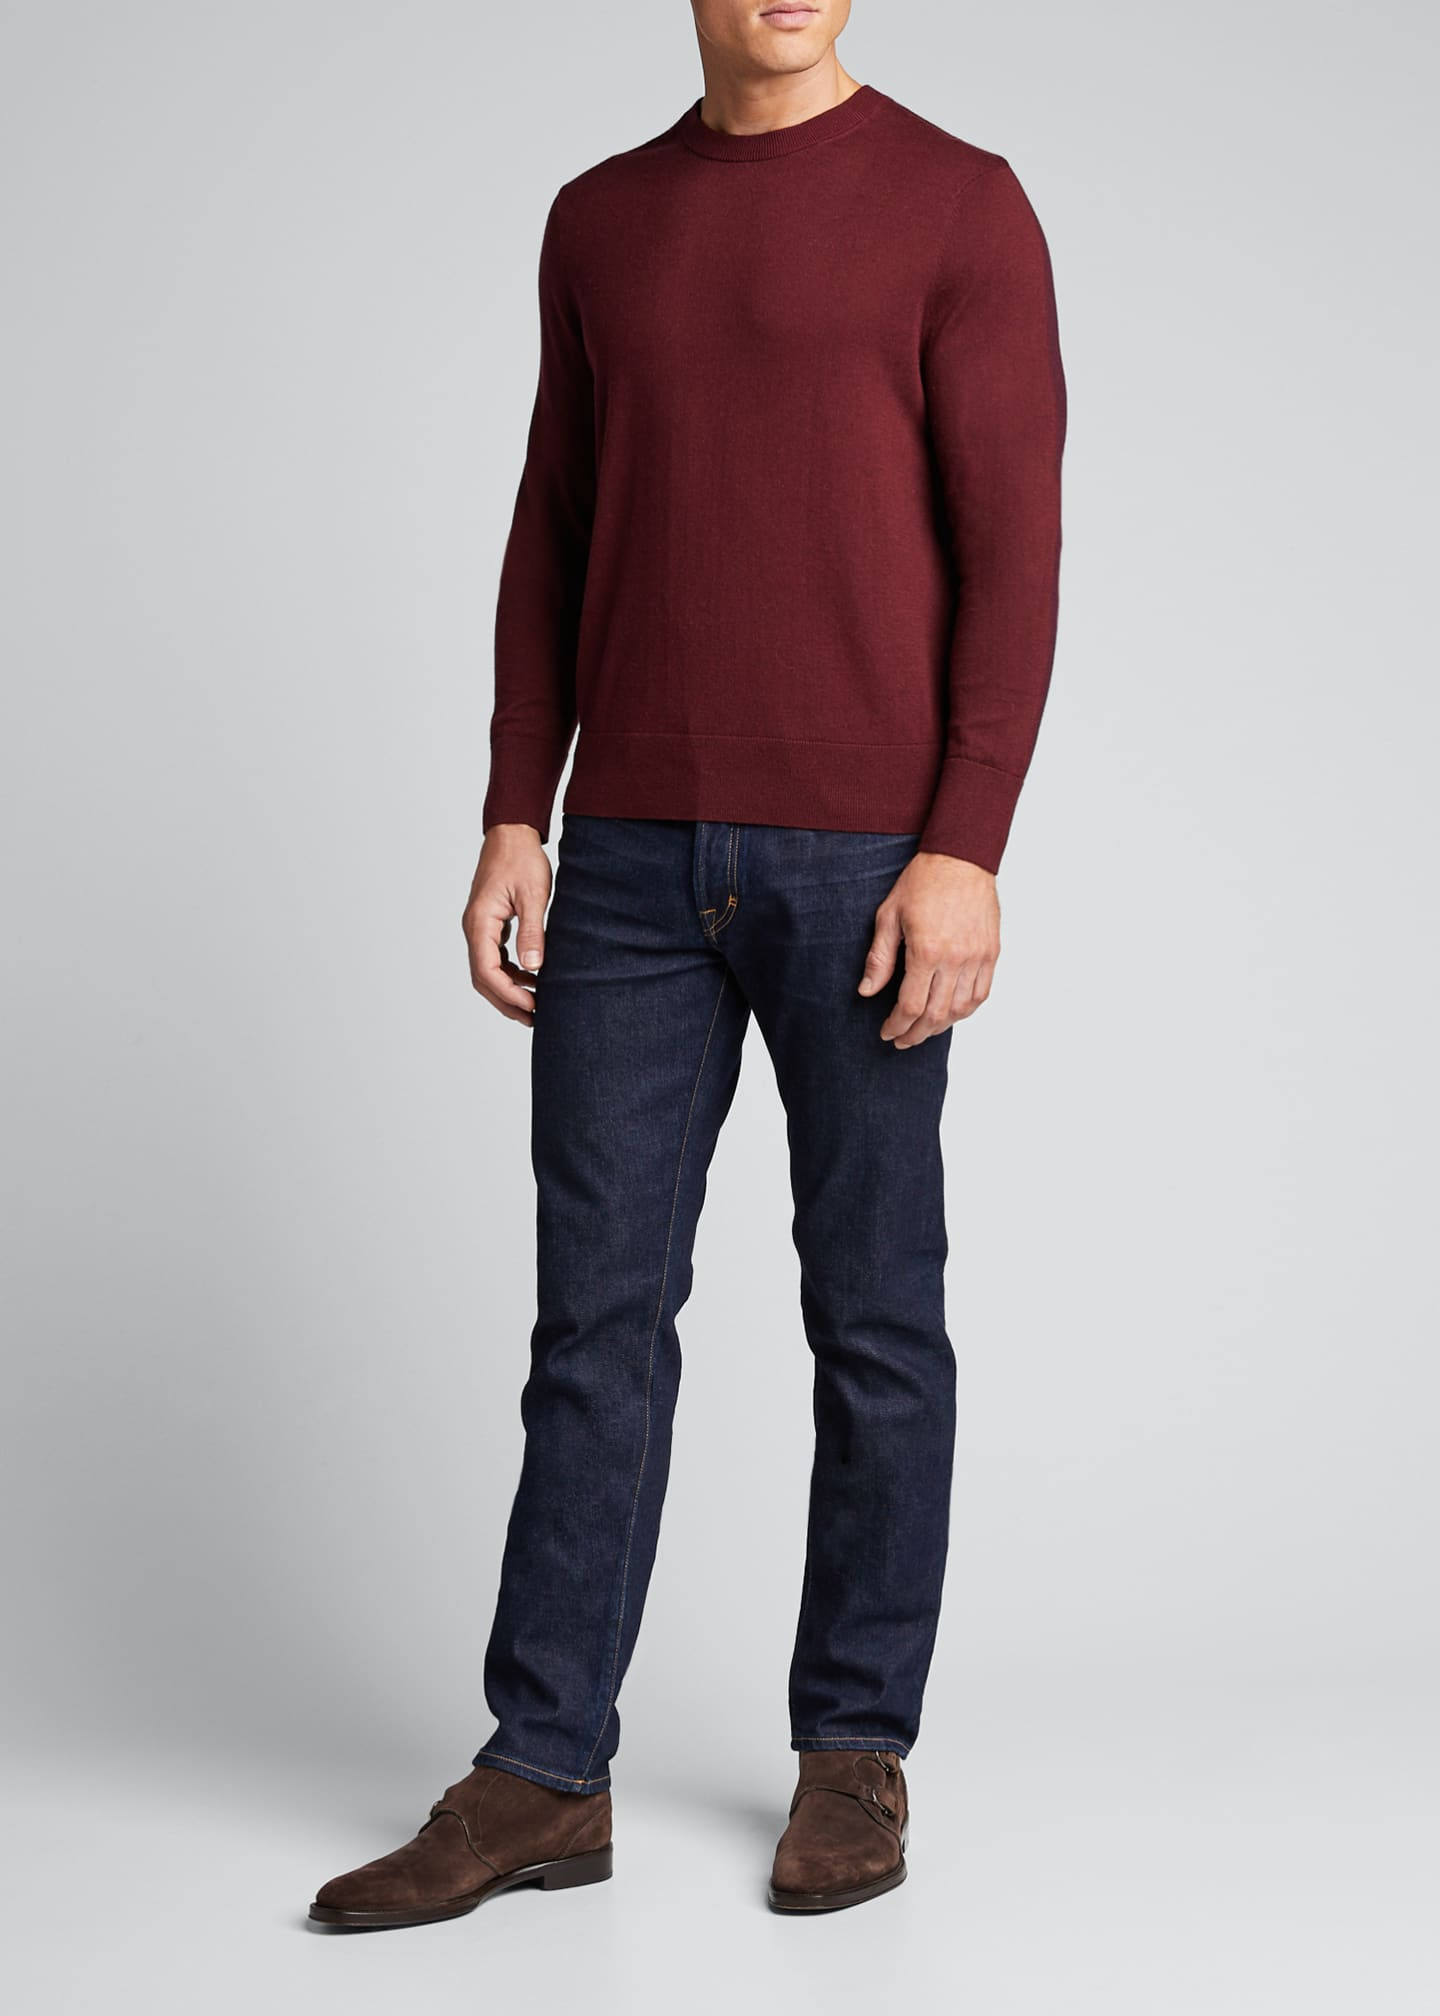 Image 1 of 5: Men's Barron Cotton-Silk Colorblock Sweater